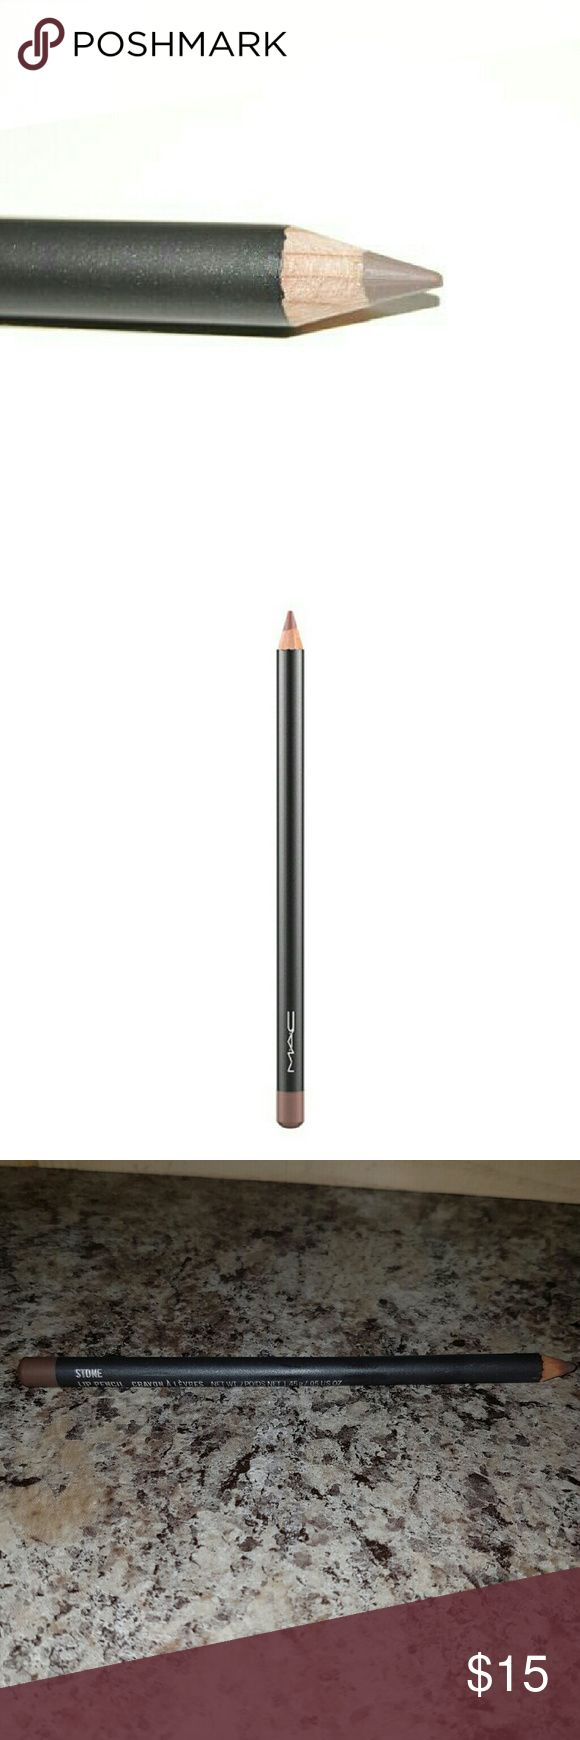 MAC Lip Pencil in the shade Stone Authentic MAC lipliner in the shade Stone.  It is a Muted greyish-taupe brown color. Made in Germany. MAC Cosmetics Makeup Lip Liner